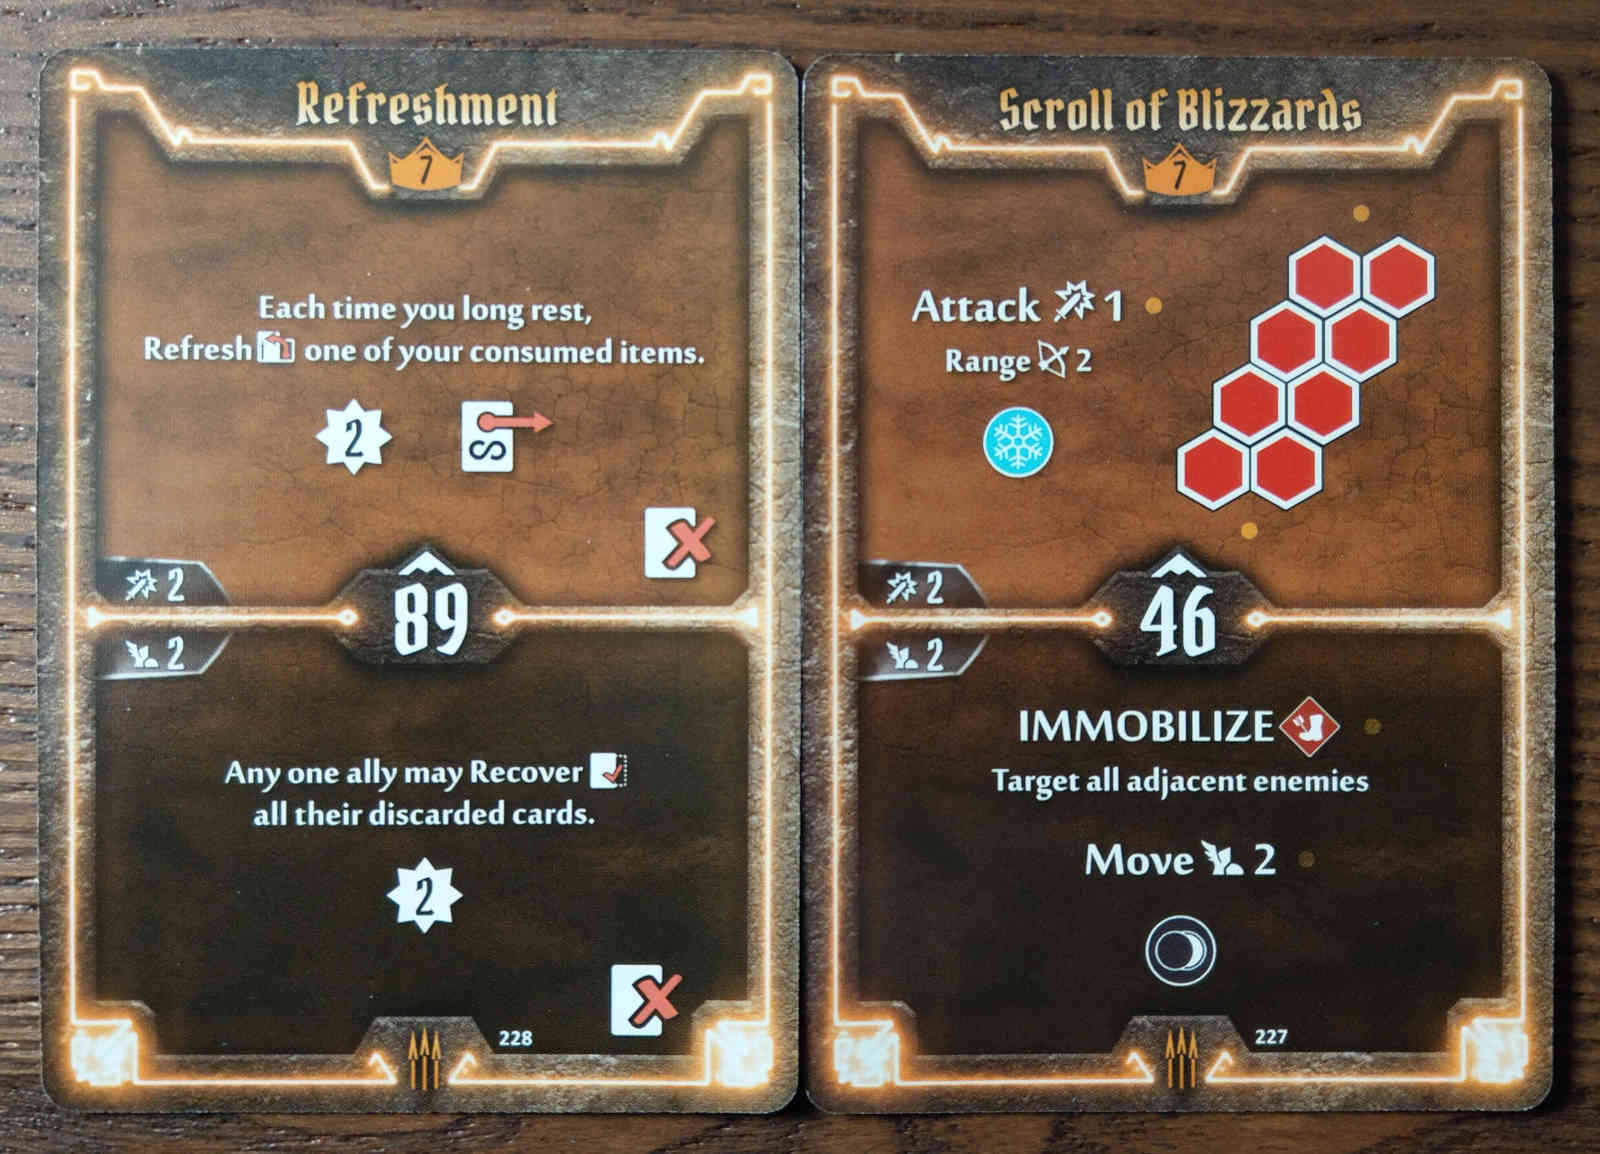 Level 7 Quartermaster cards - Refreshment and Scroll of Blizzards